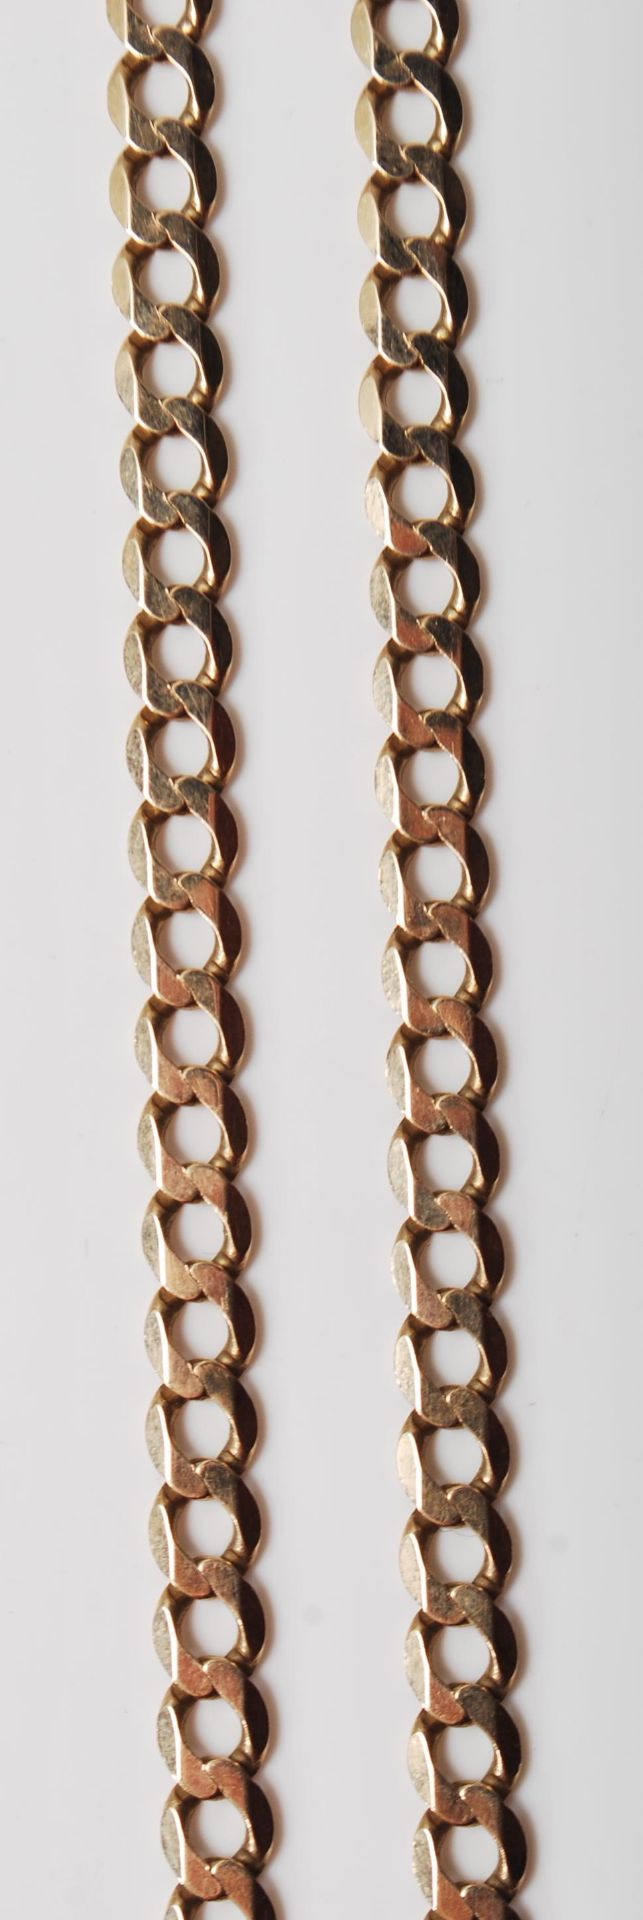 9CT GOLD FLAT LINK NECKLACE CHAIN - Image 3 of 7